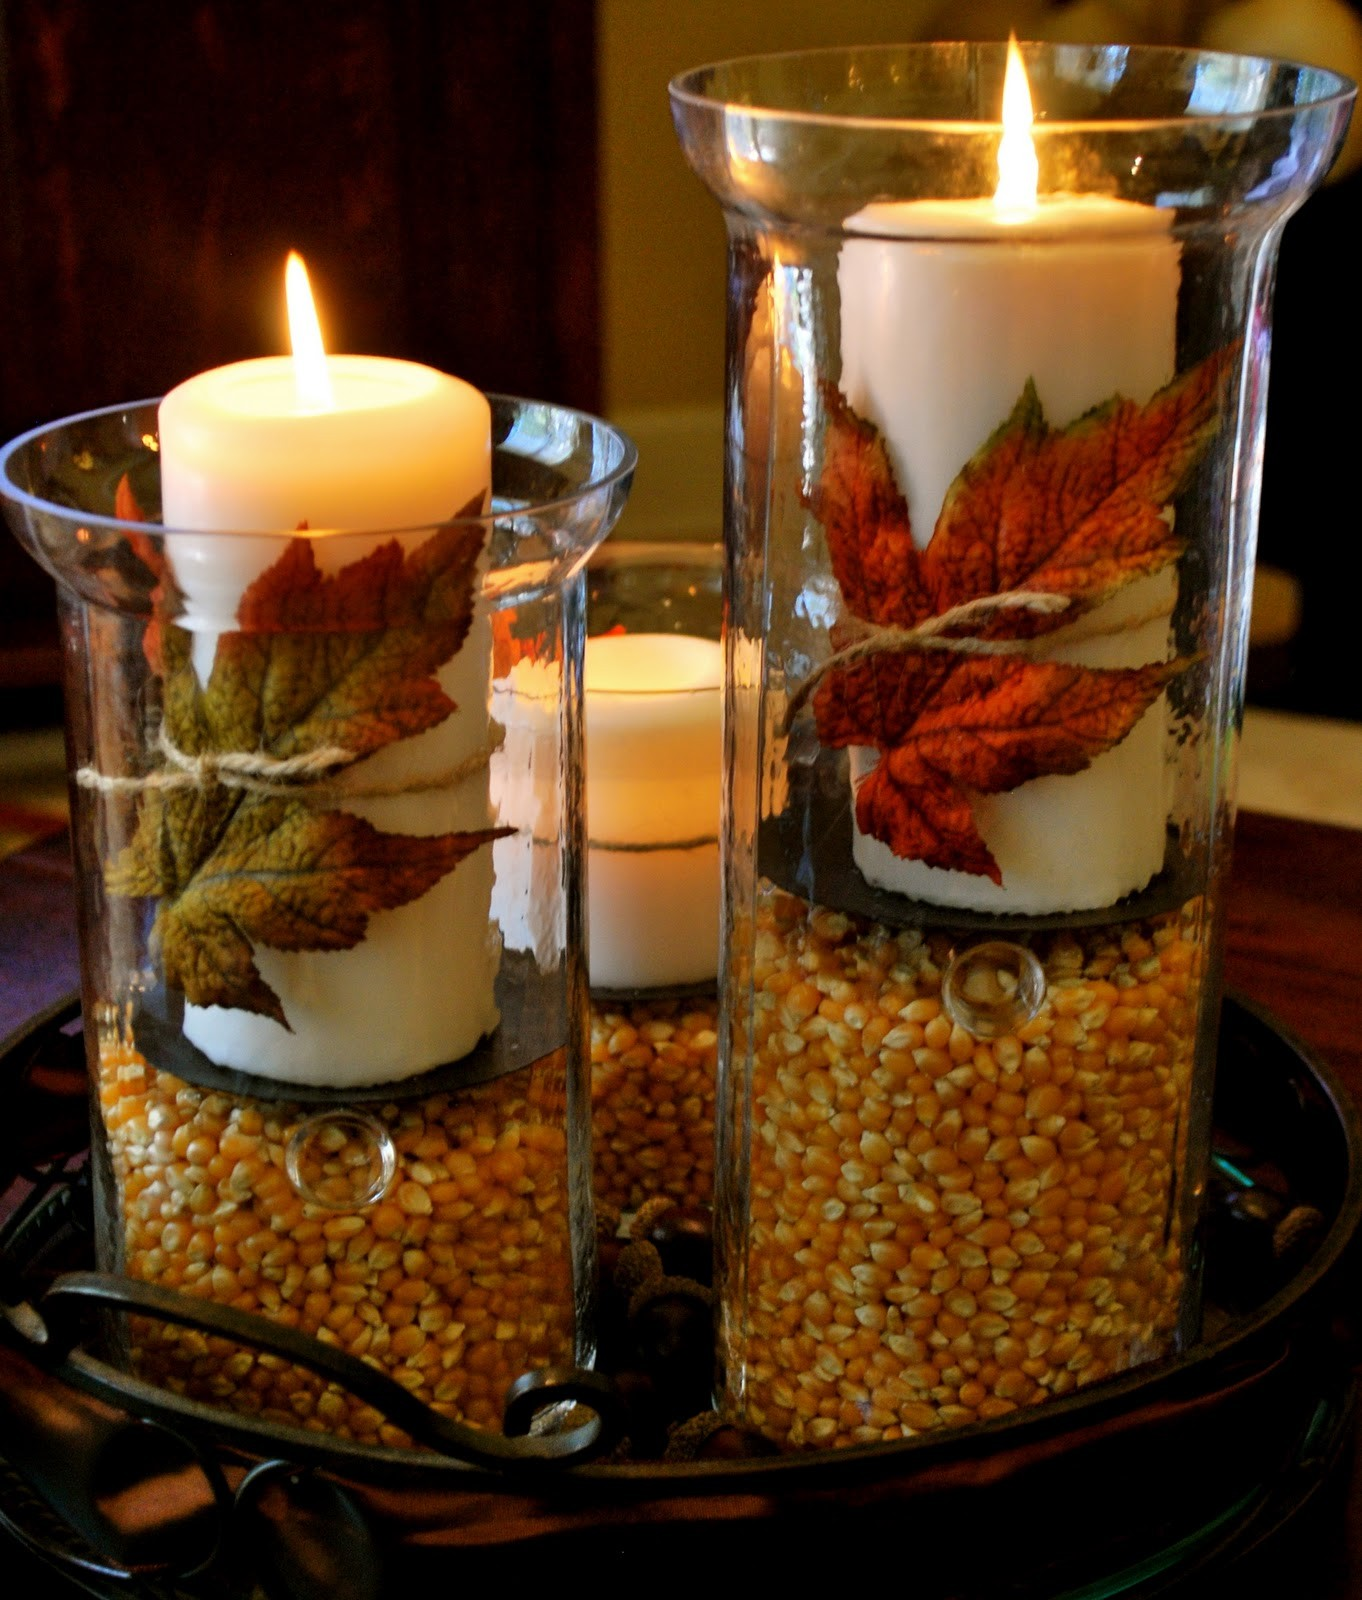 decorating-ideas-for-thanksgiving-table-fresh-decorating-kitchen-table-for-fall-decoration-ideas-autumn-setting-of-decorating-ideas-for-thanksgiving-table.jpg